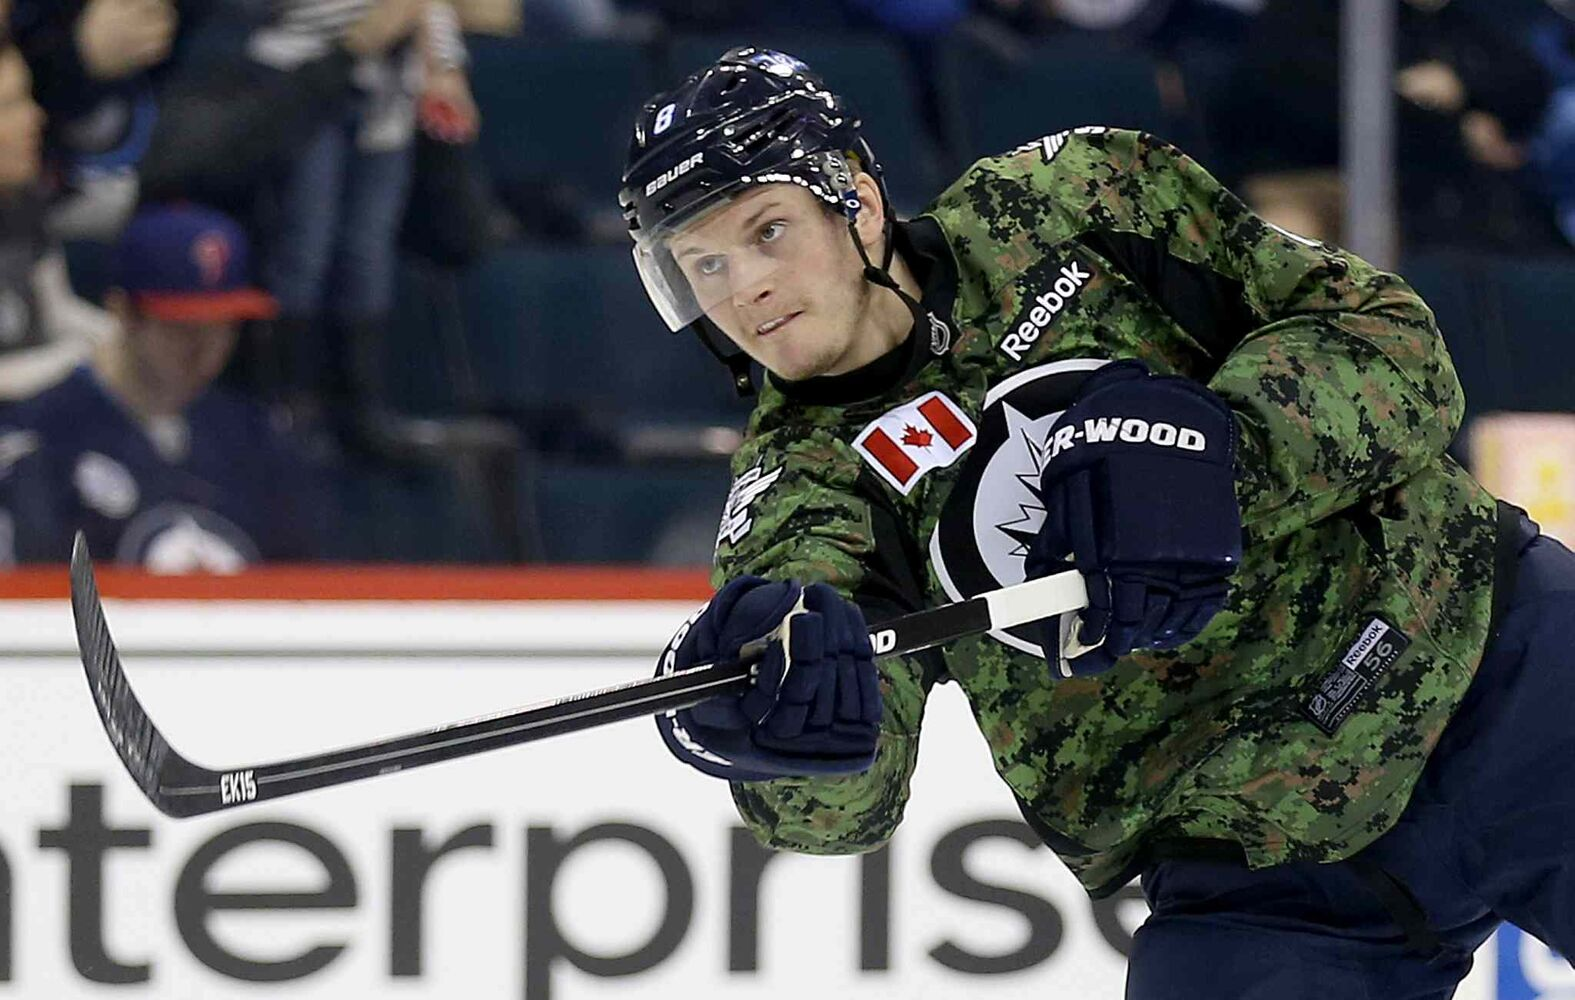 Winnipeg Jets' Jacob Trouba (8) fires a shot during warmup while wearing a camouflage jersey on Military Appreciation day prior to the game against the Ottawa Senators', Saturday. (TREVOR HAGAN / WINNIPEG FREE PRESS)